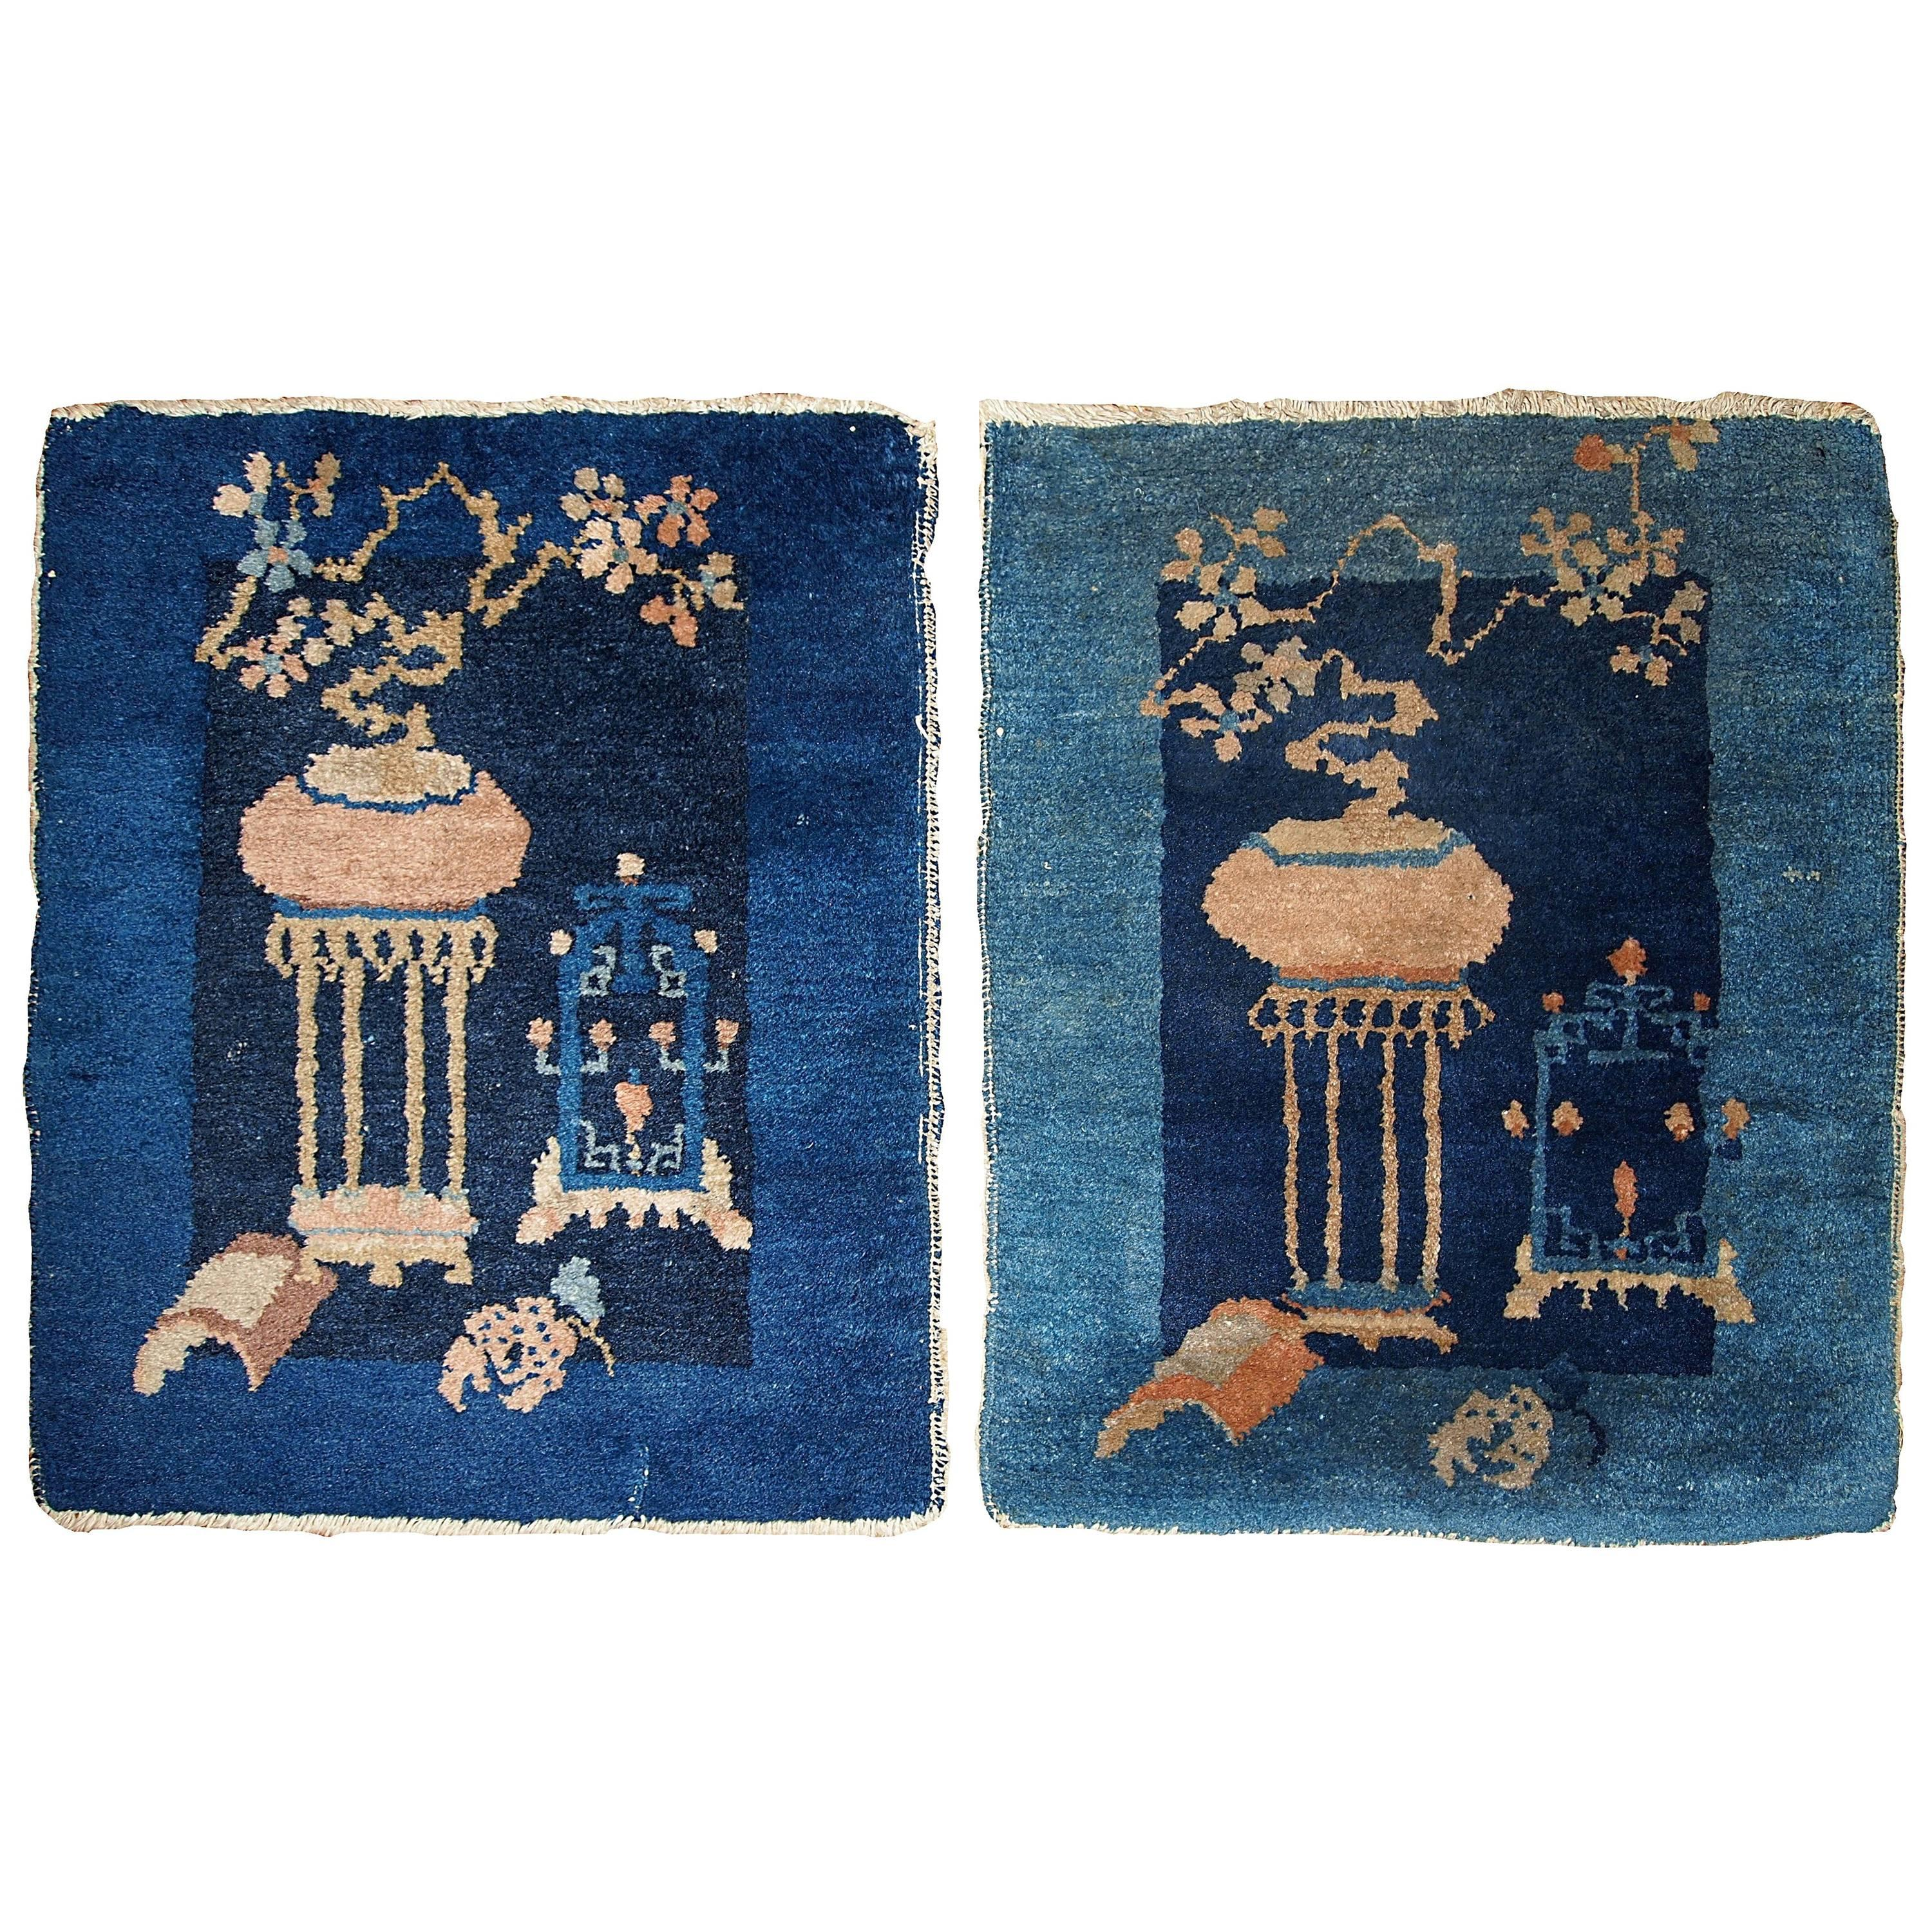 Handmade Antique Collectible Pair of Peking Chinese Rugs, 1870s, 1B327